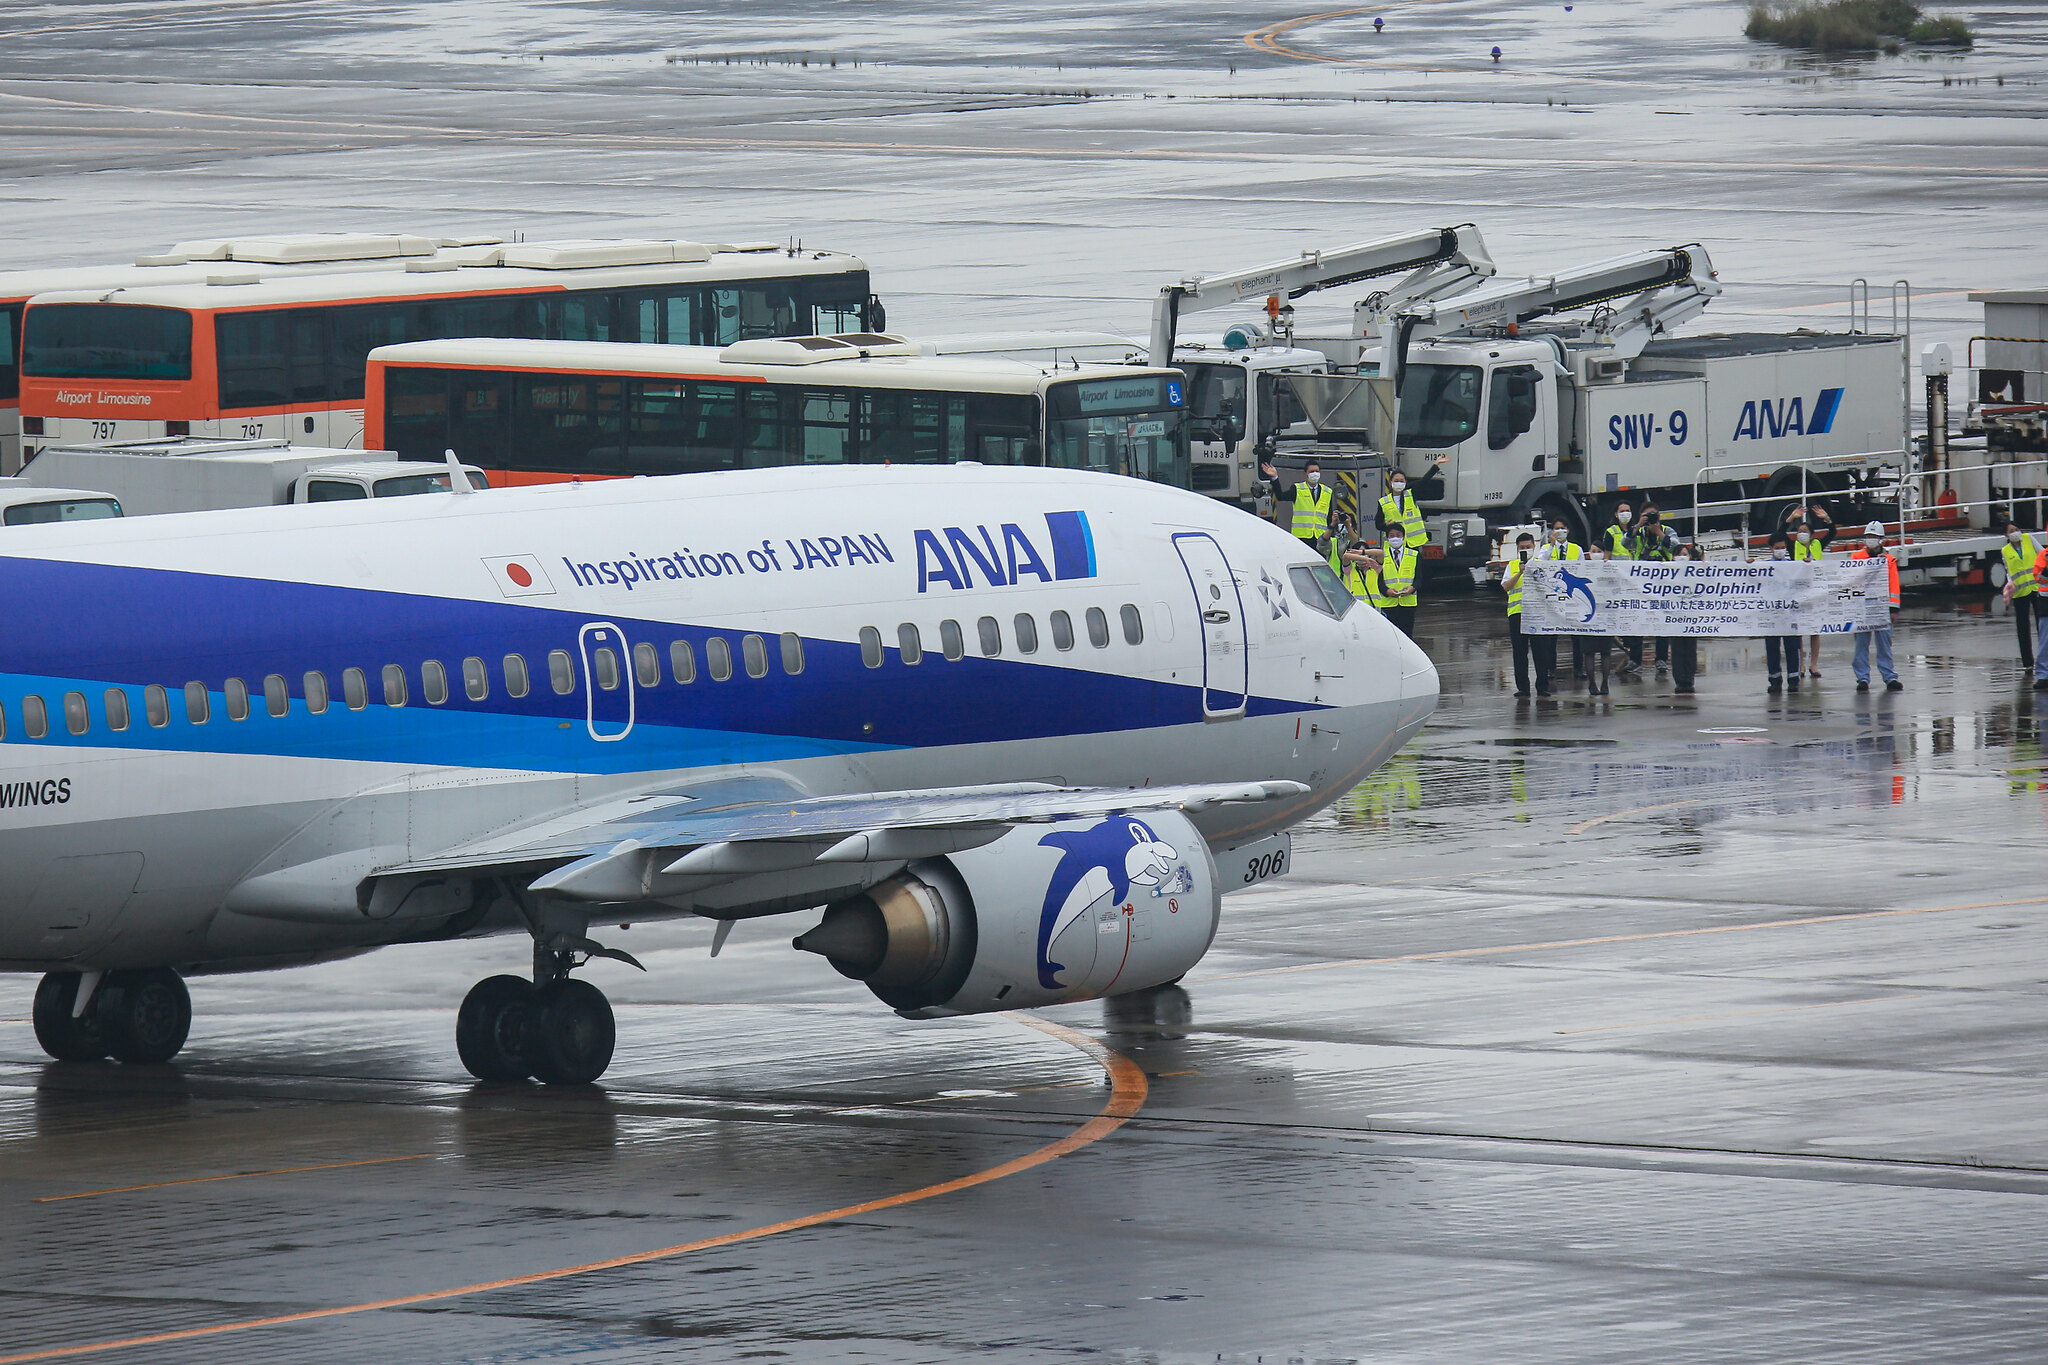 ANA All Nippon Airways Retires 737-500 - Airport Spotting